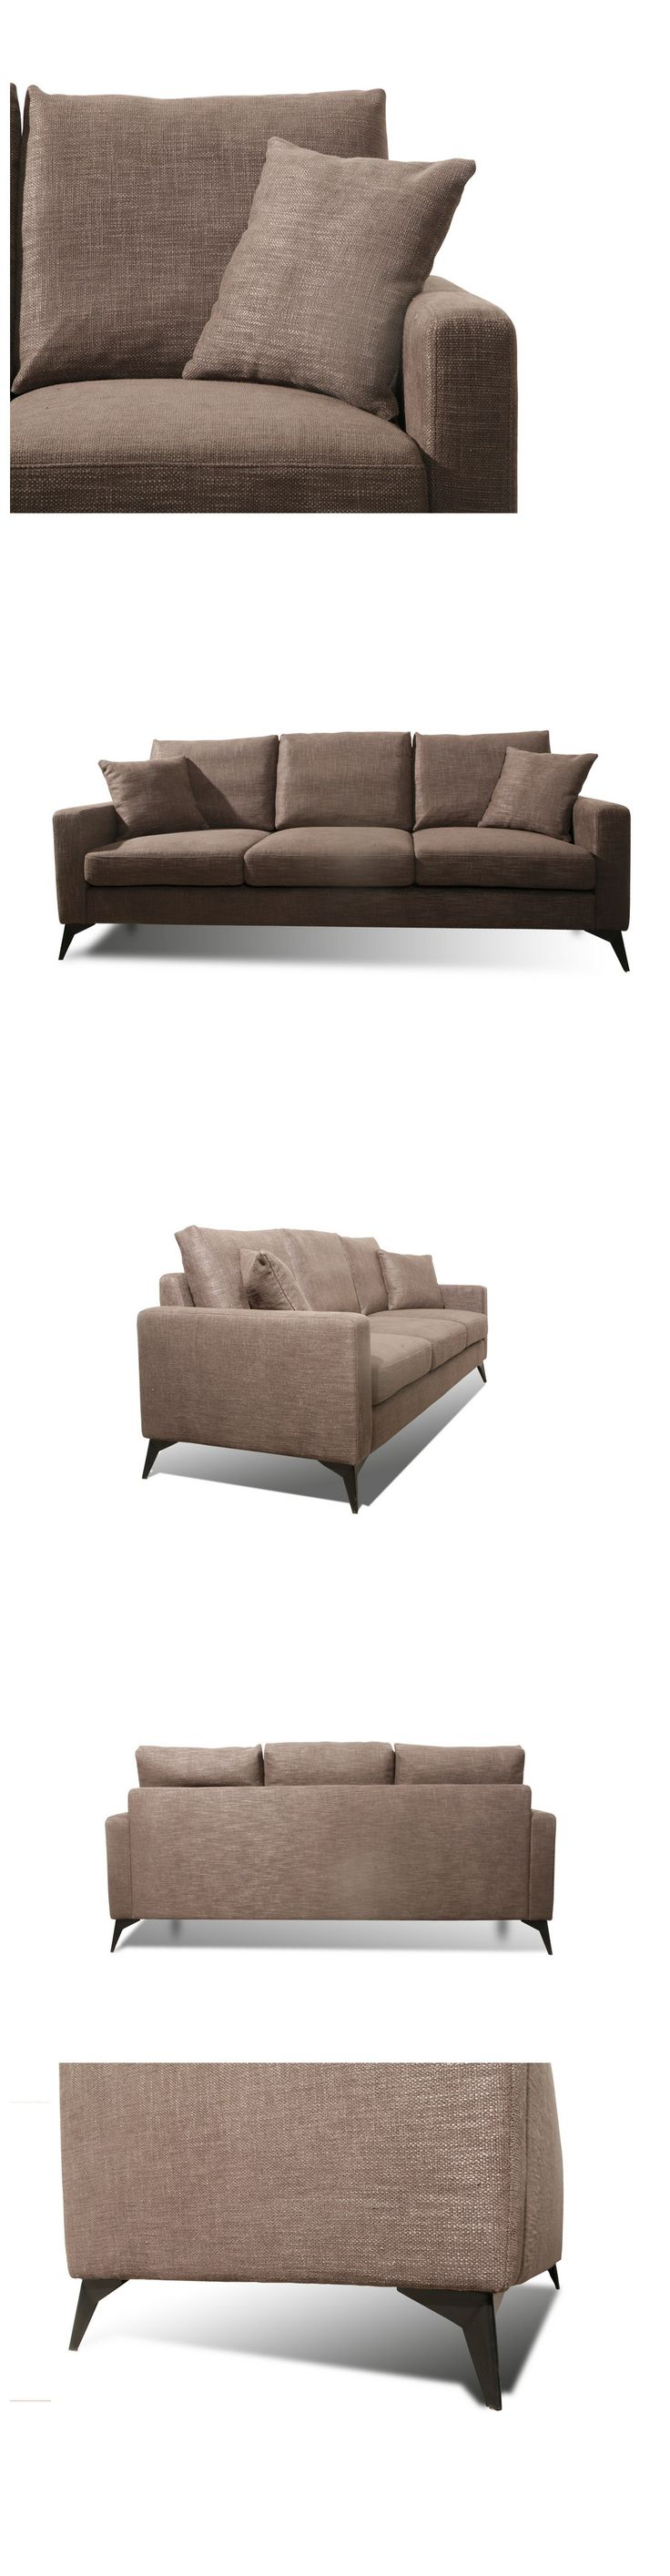 1256 best Sofa images on Pinterest